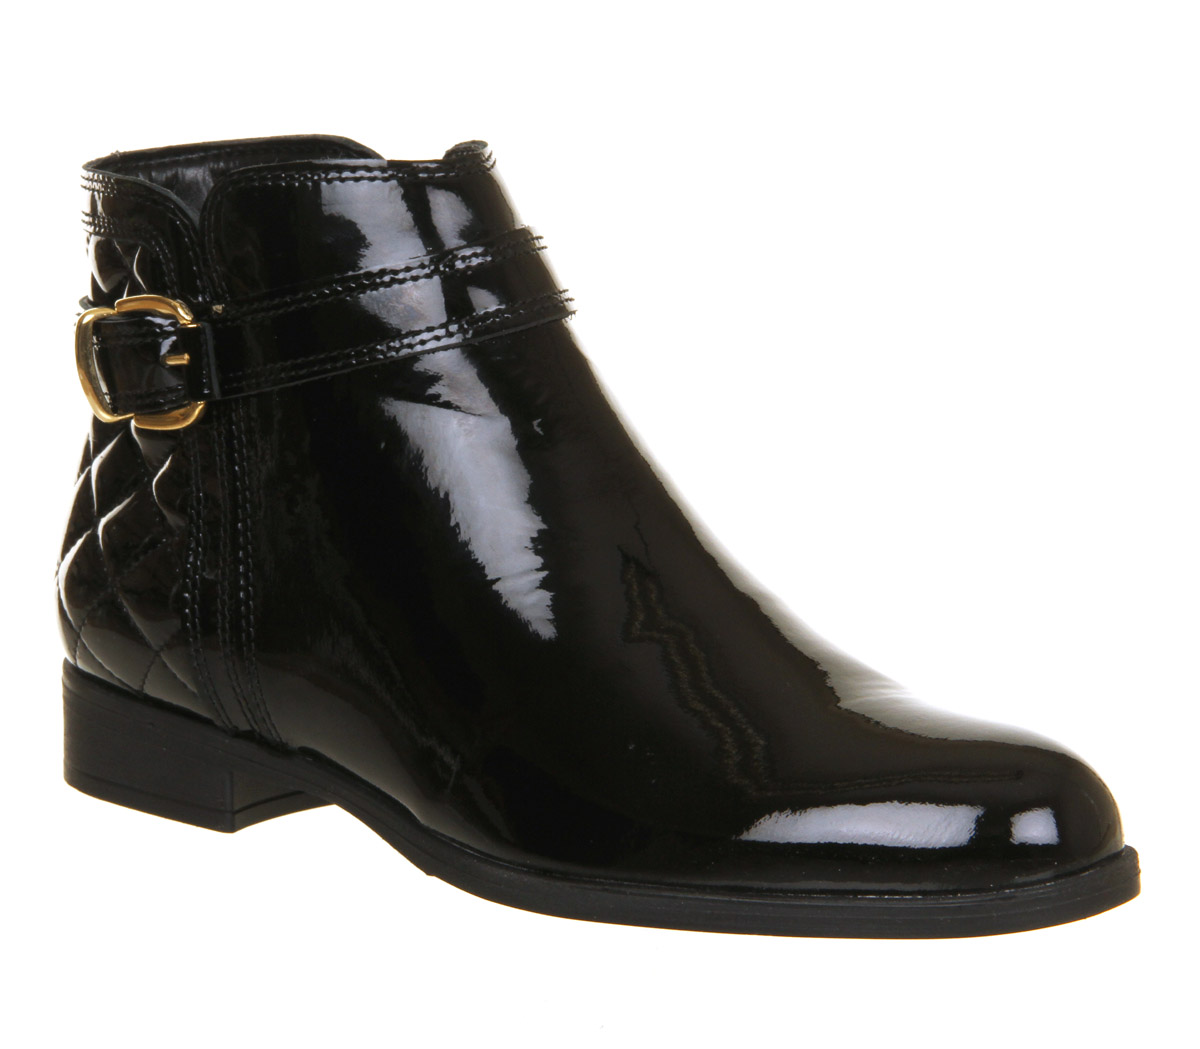 atrociouslf.gq: ankle boots for women. Blivener Women's Casual Slip On Loafer Pointed Toe Cut Out Slip On Office Casual Dressy Ankle Boot. by Blivener. $ - $ $ 25 $ 27 99 Prime. FREE Shipping on eligible orders. Some sizes/colors are Prime eligible. out of .